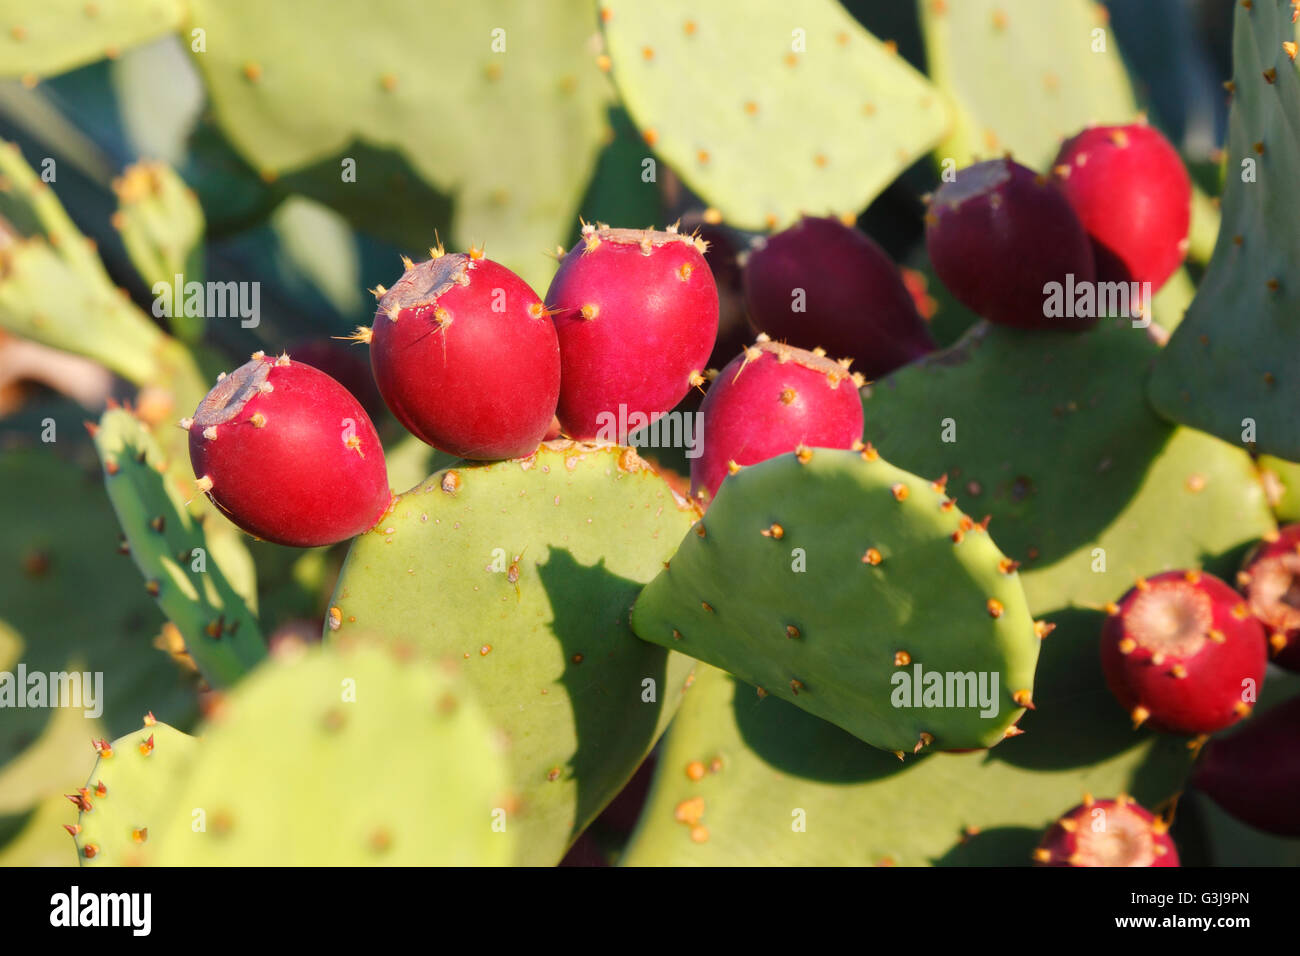 Red ripe prickly pear fruit of the Cactus - Stock Image